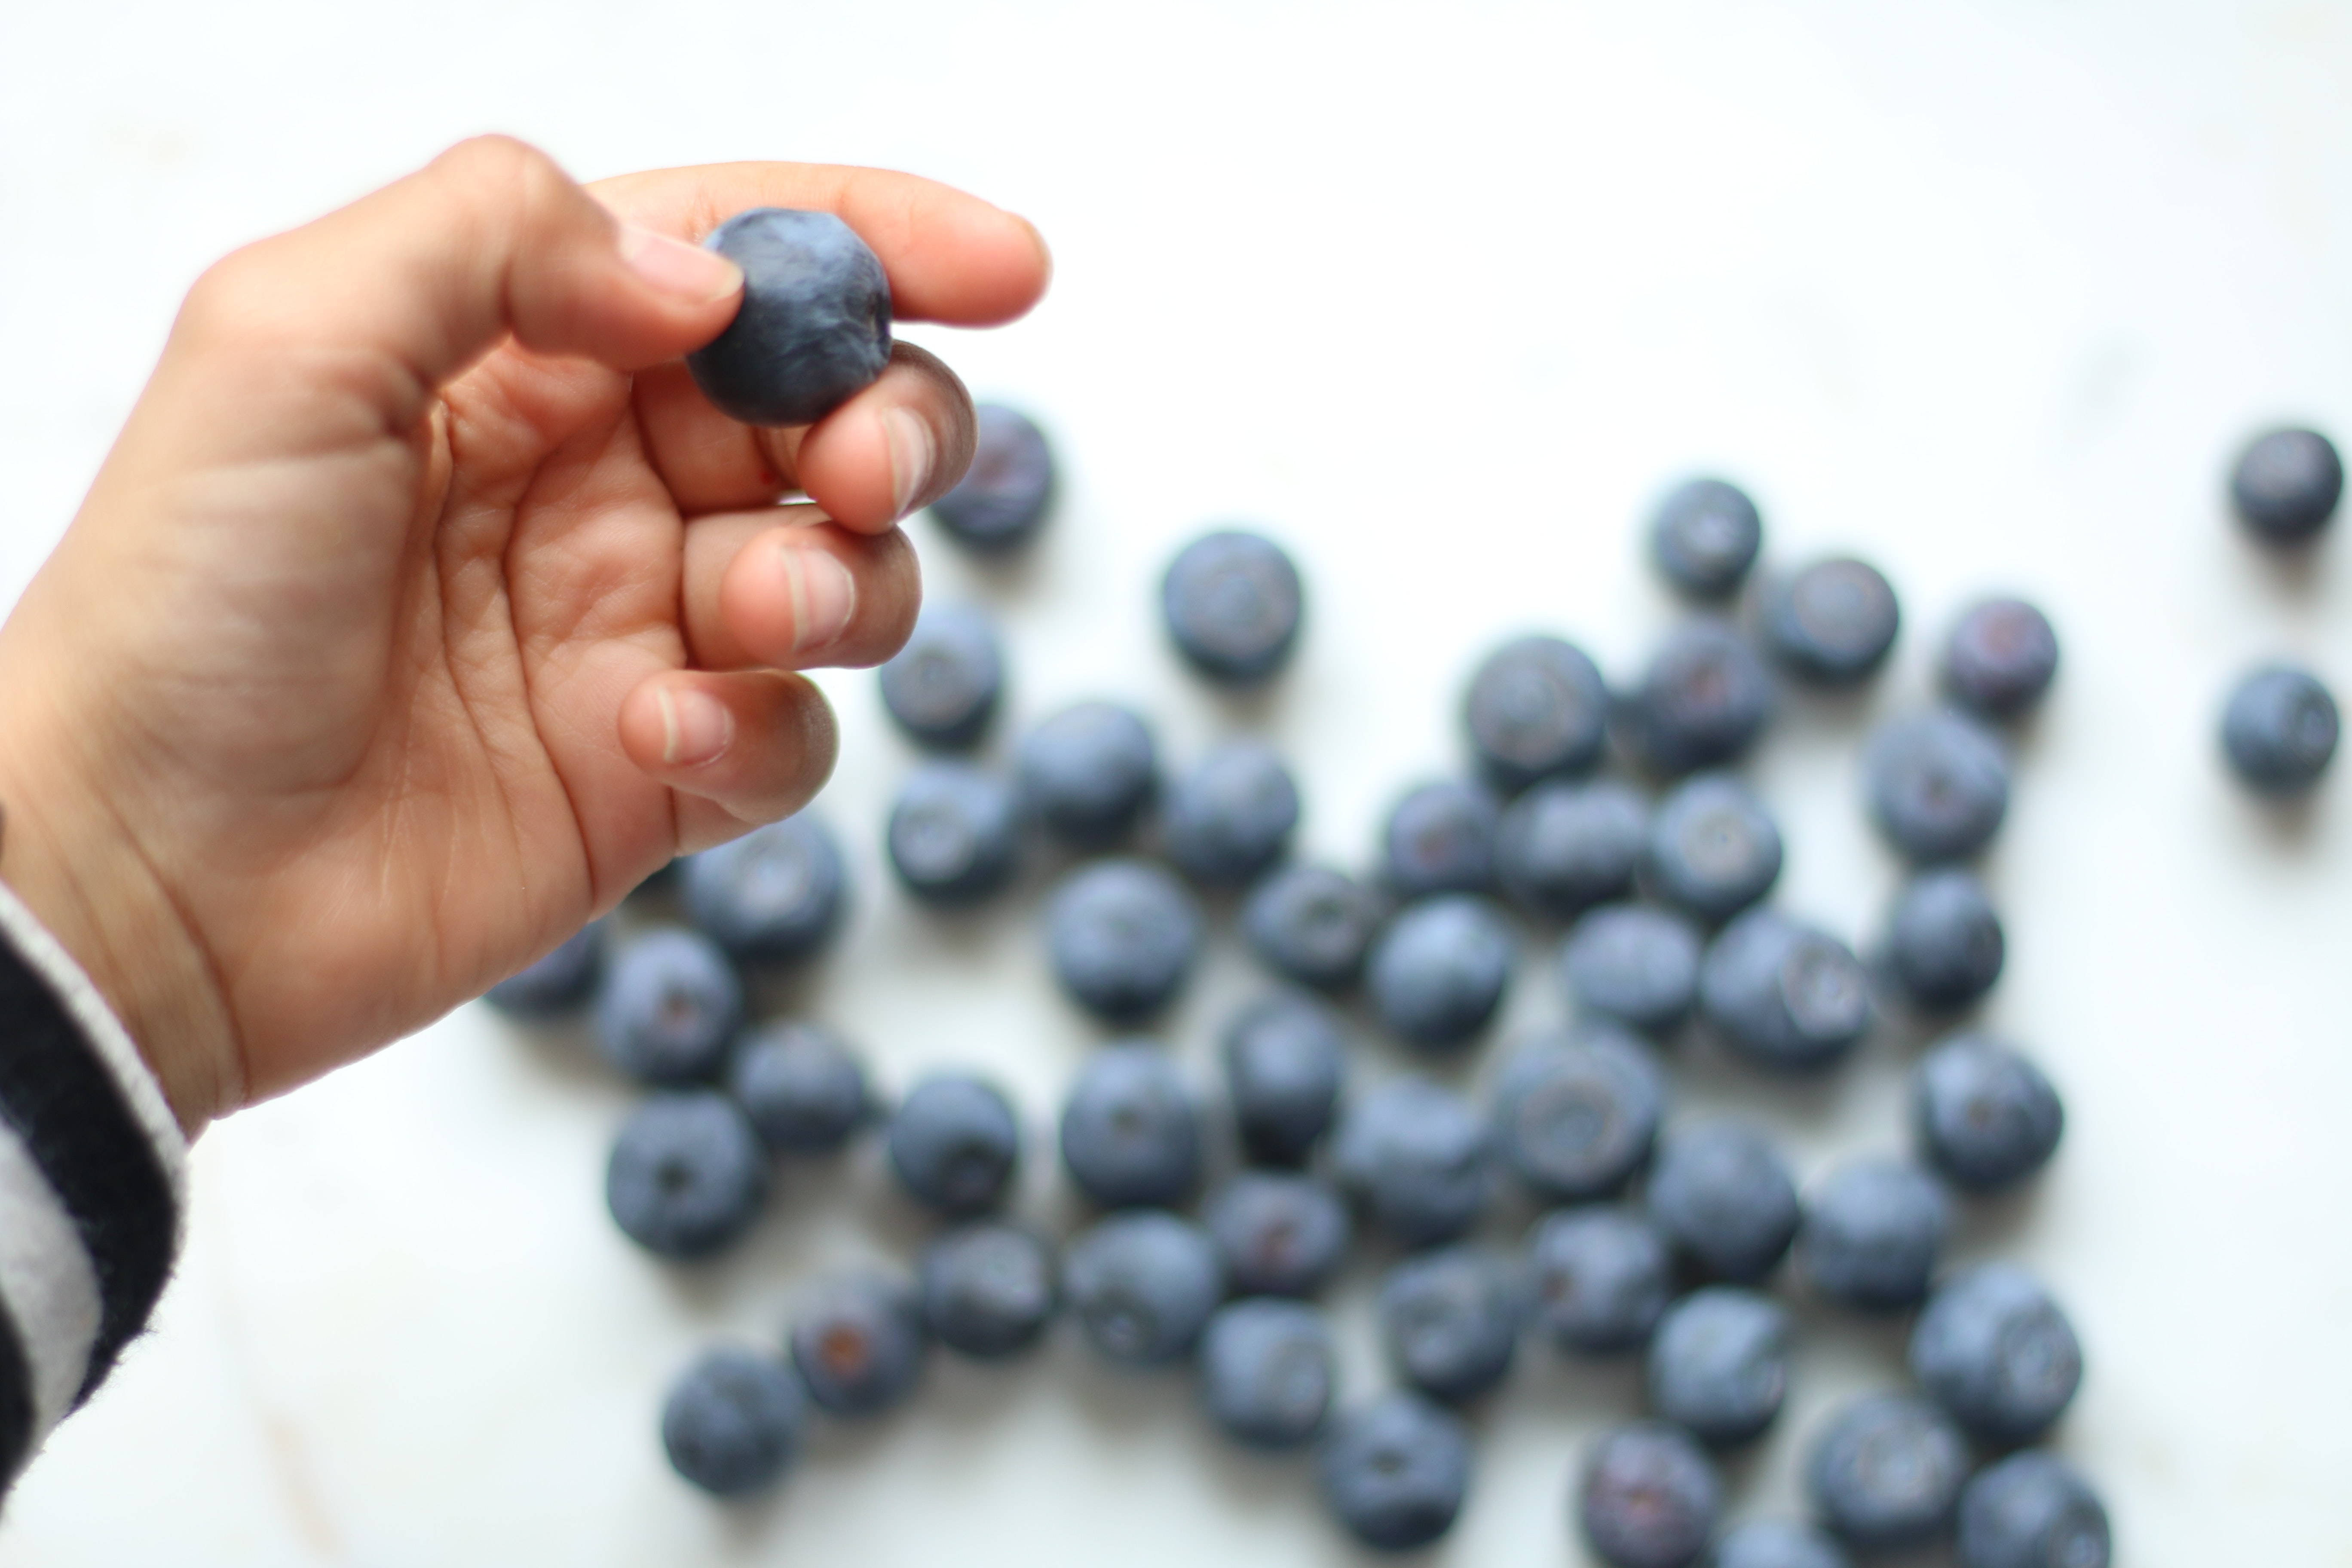 Person holding blueberry photo